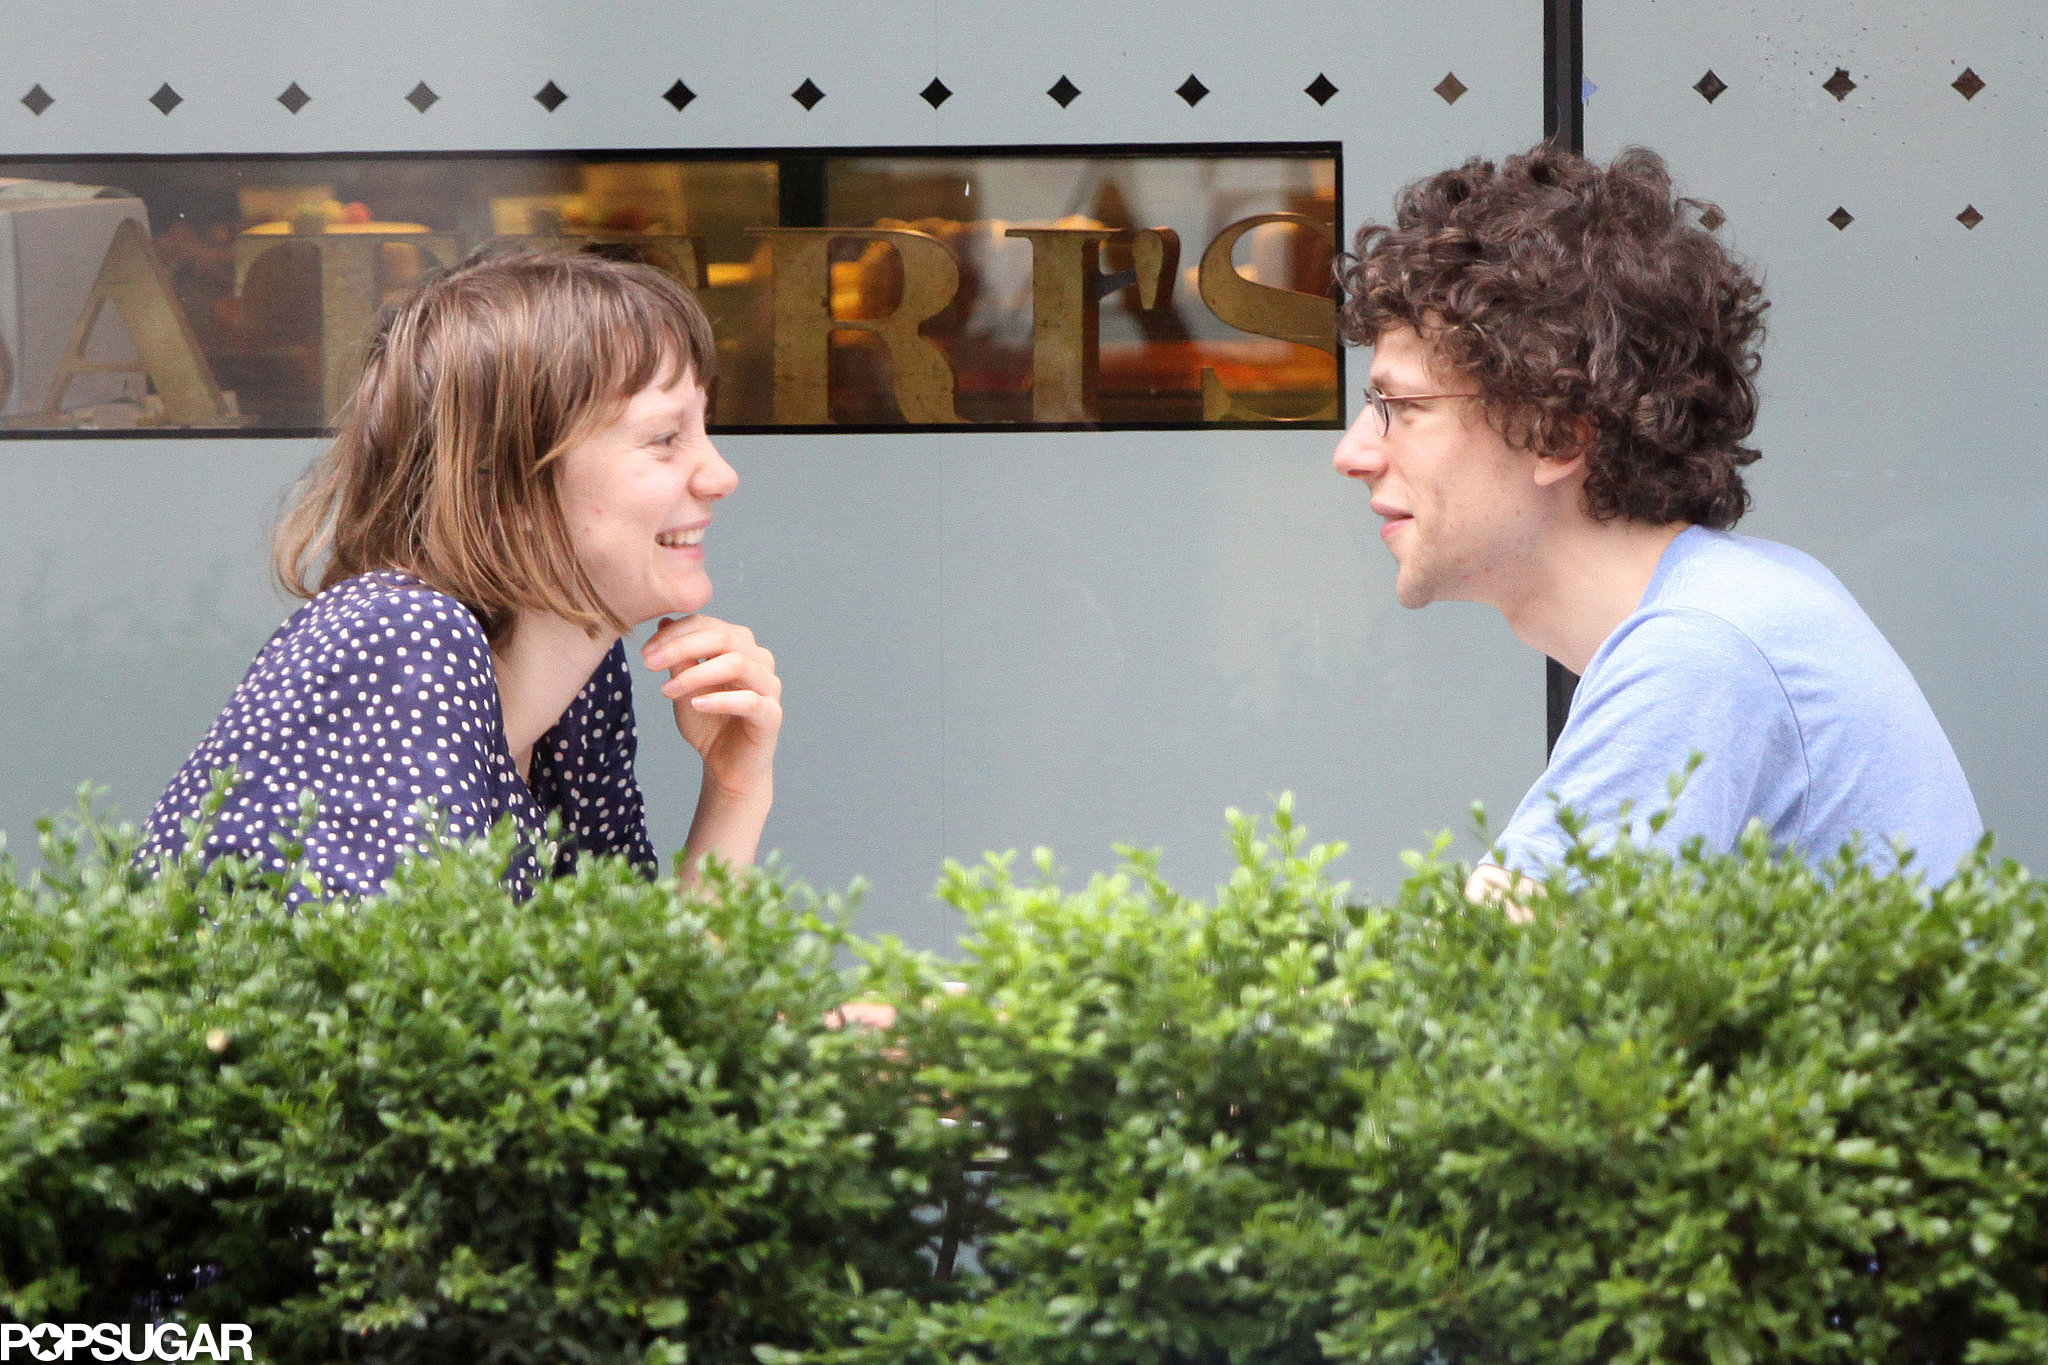 Jesse Eisenberg and Mia Wasikowska had a date in Toronto.